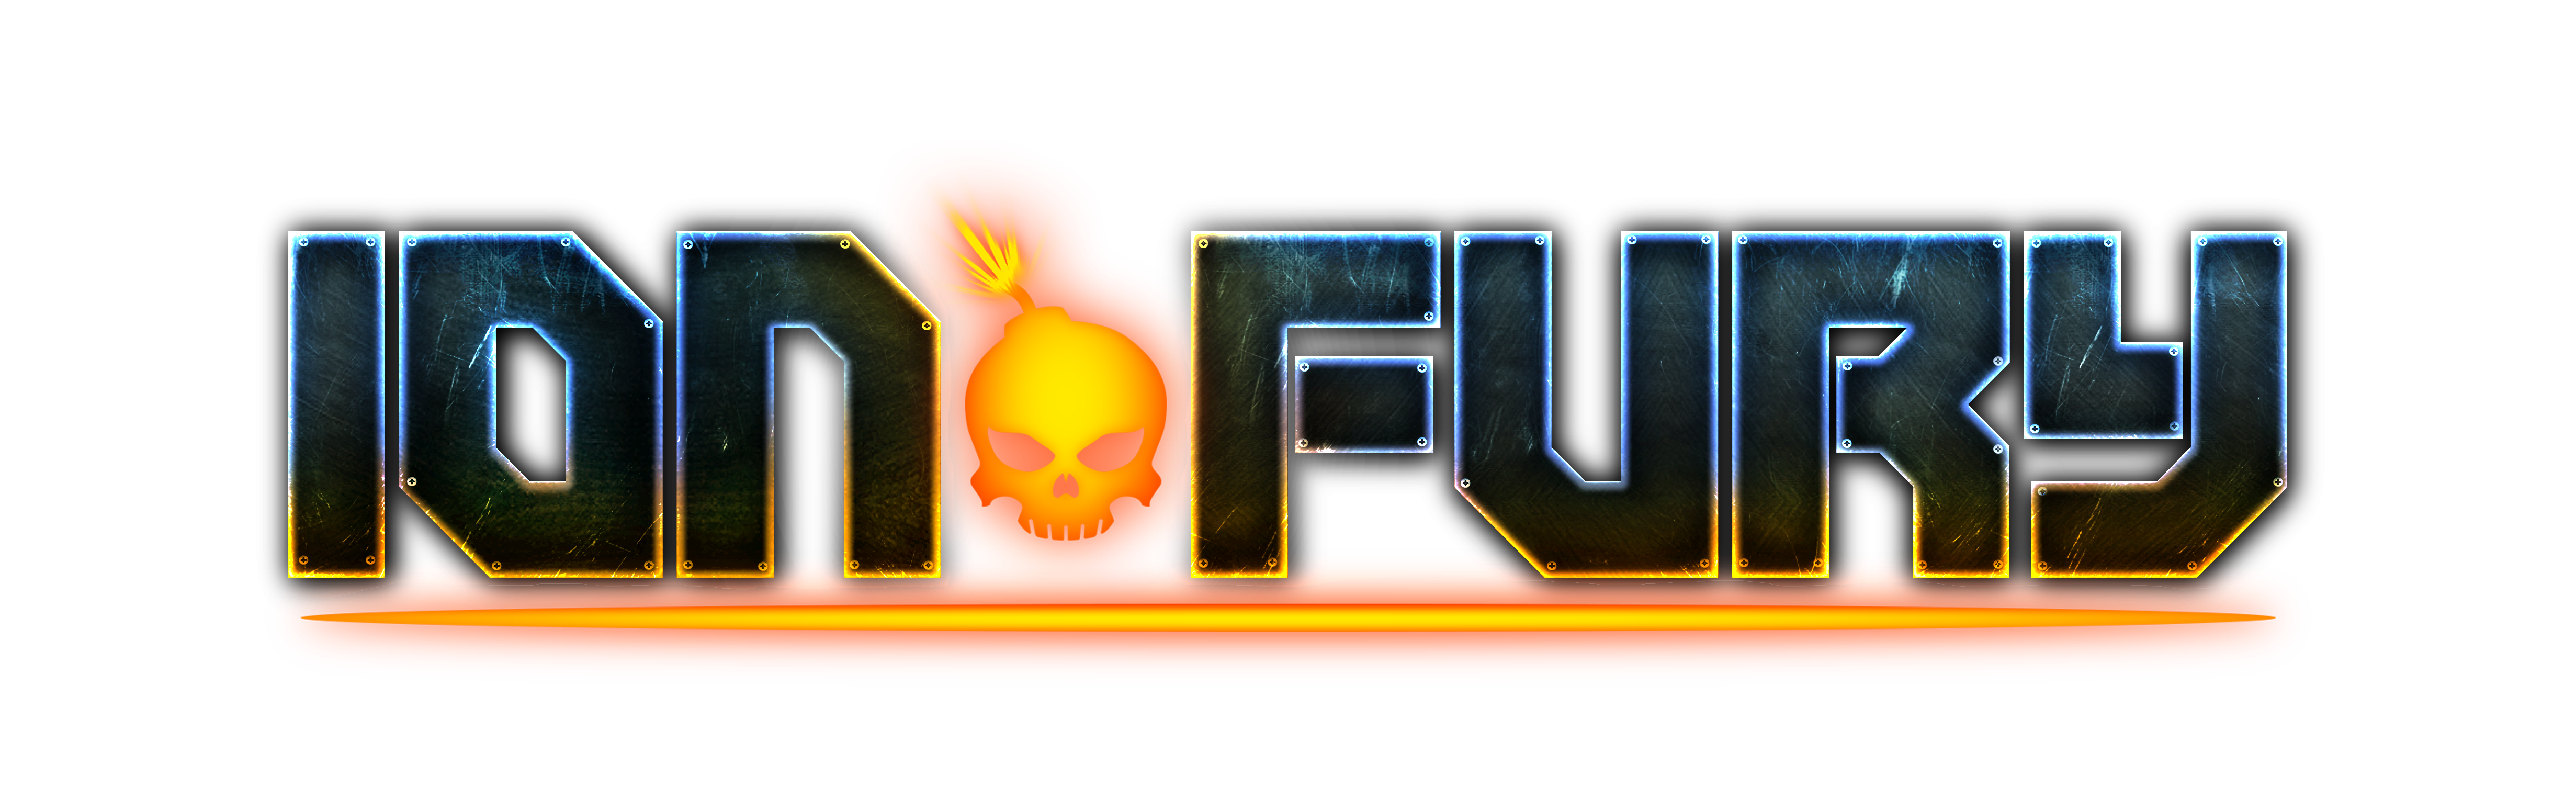 ION MAIDEN is now ION FURY - RELEASE DATE ANNOUNCED!